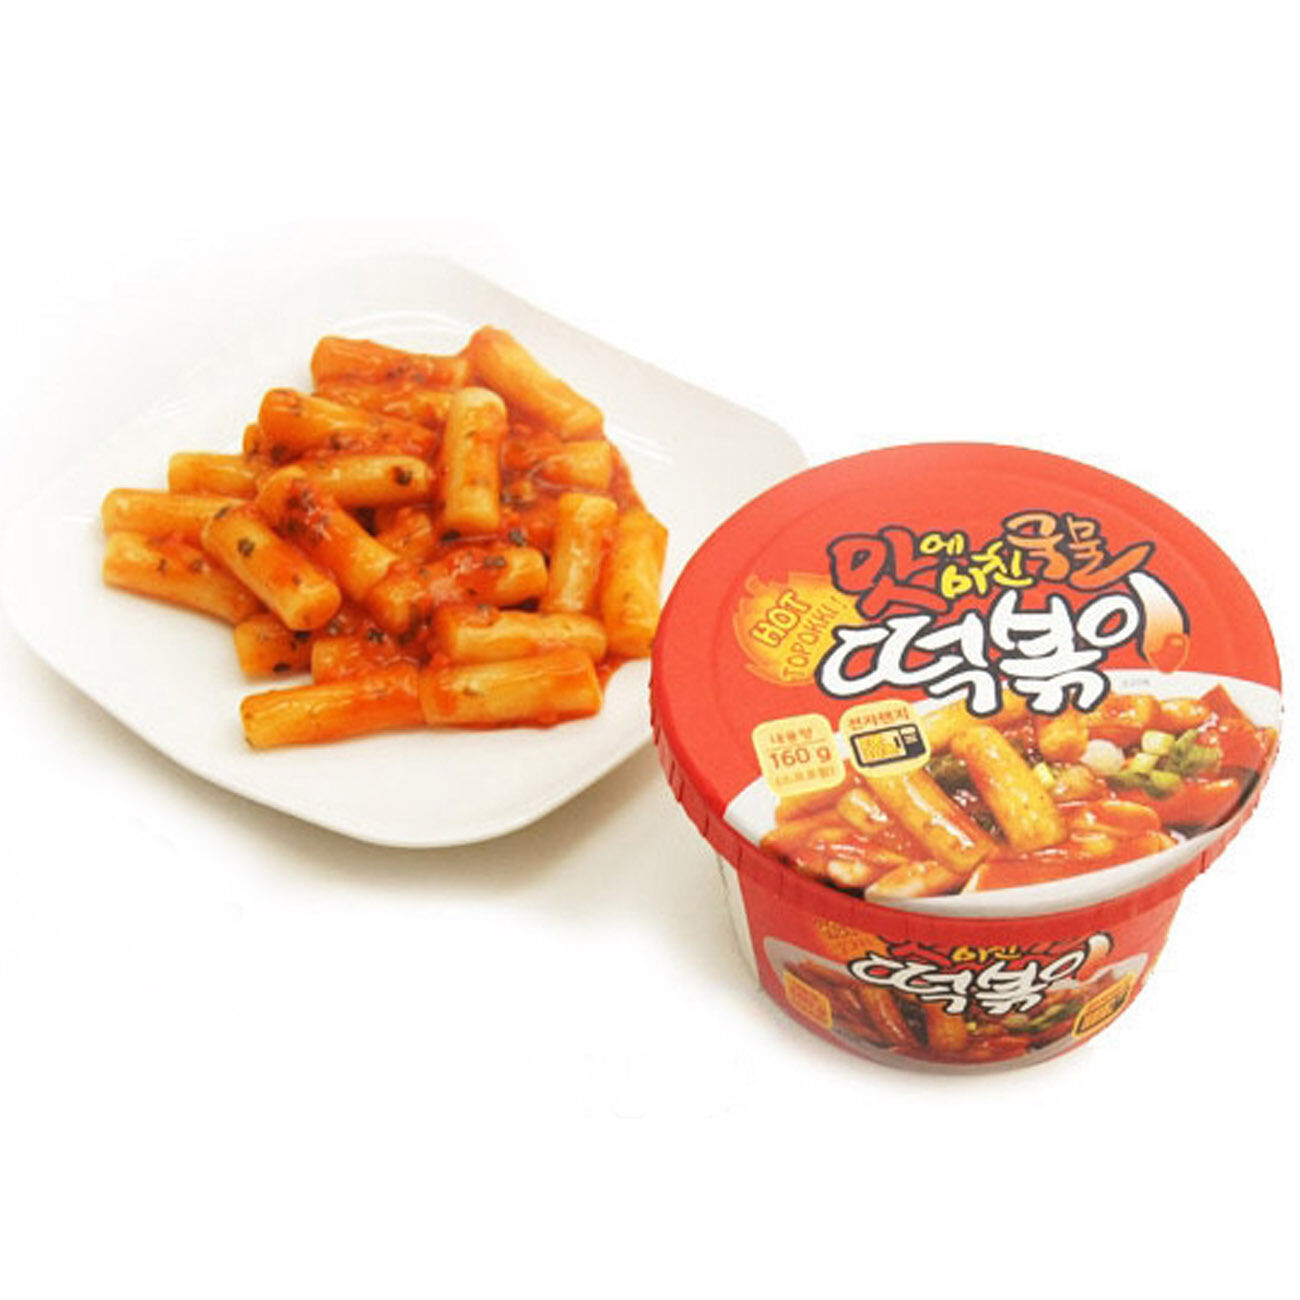 Tteokbokki Instant Spicy Korean Stir-fried Rice Cake Korean Snack Instant Korean Rice Cake Cup